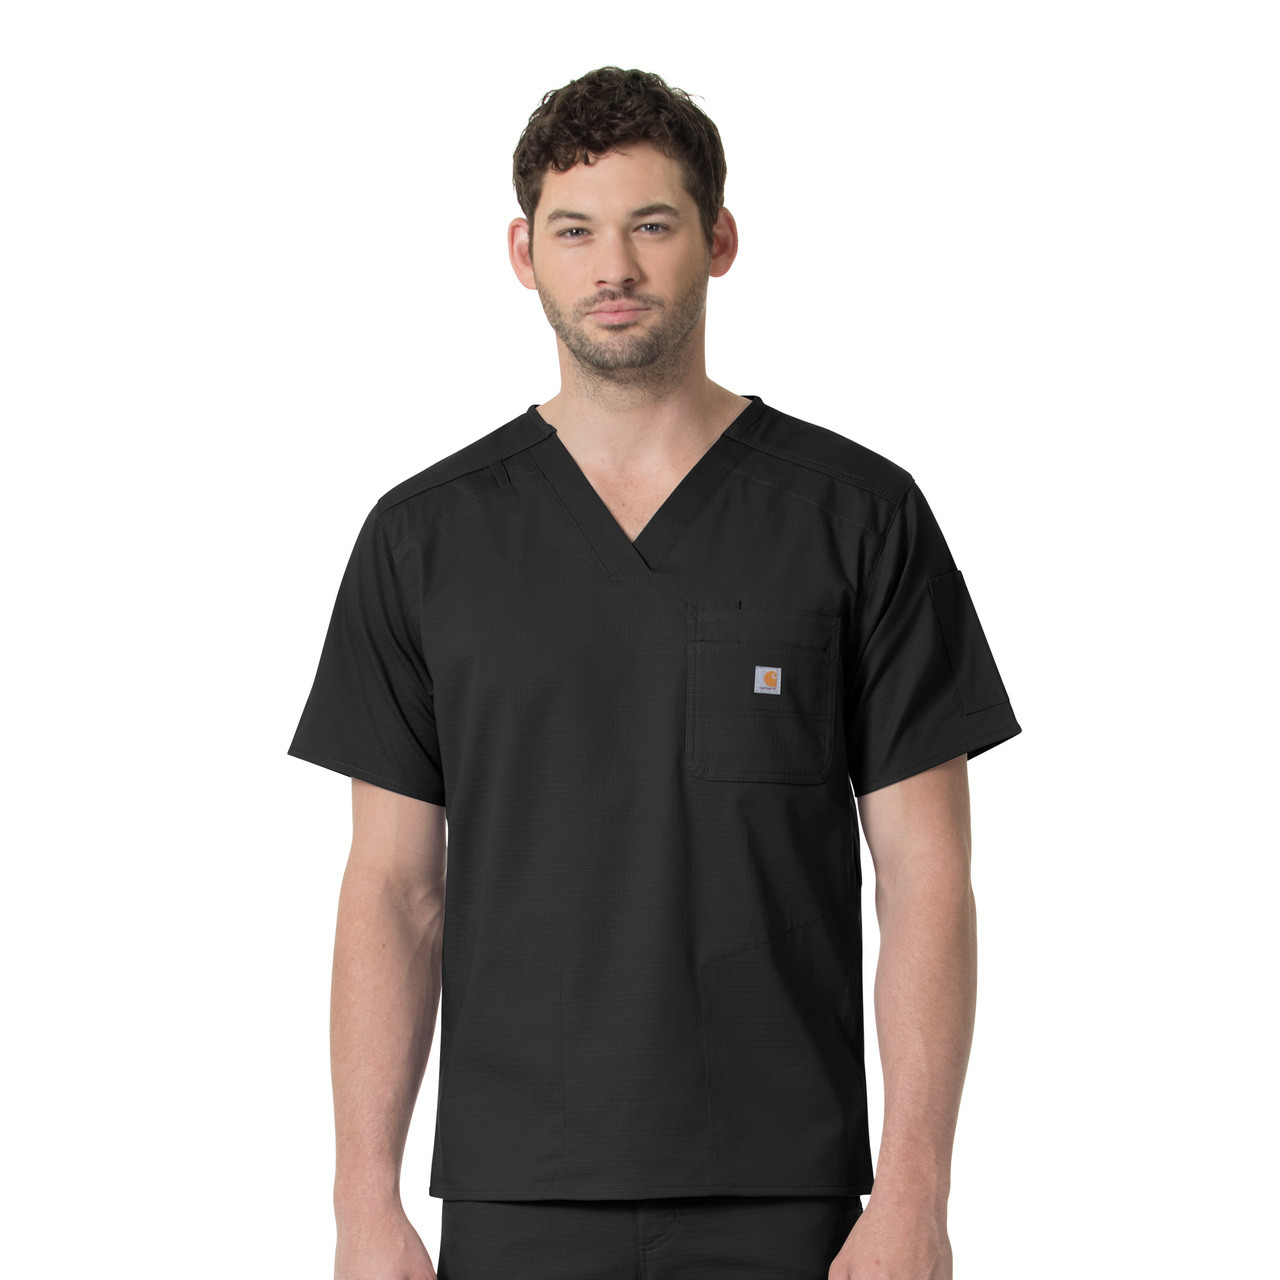 (C16418) Carhartt Ripstop Rugged Flex Men's Slim Fit 6 Pocket Scrub Top